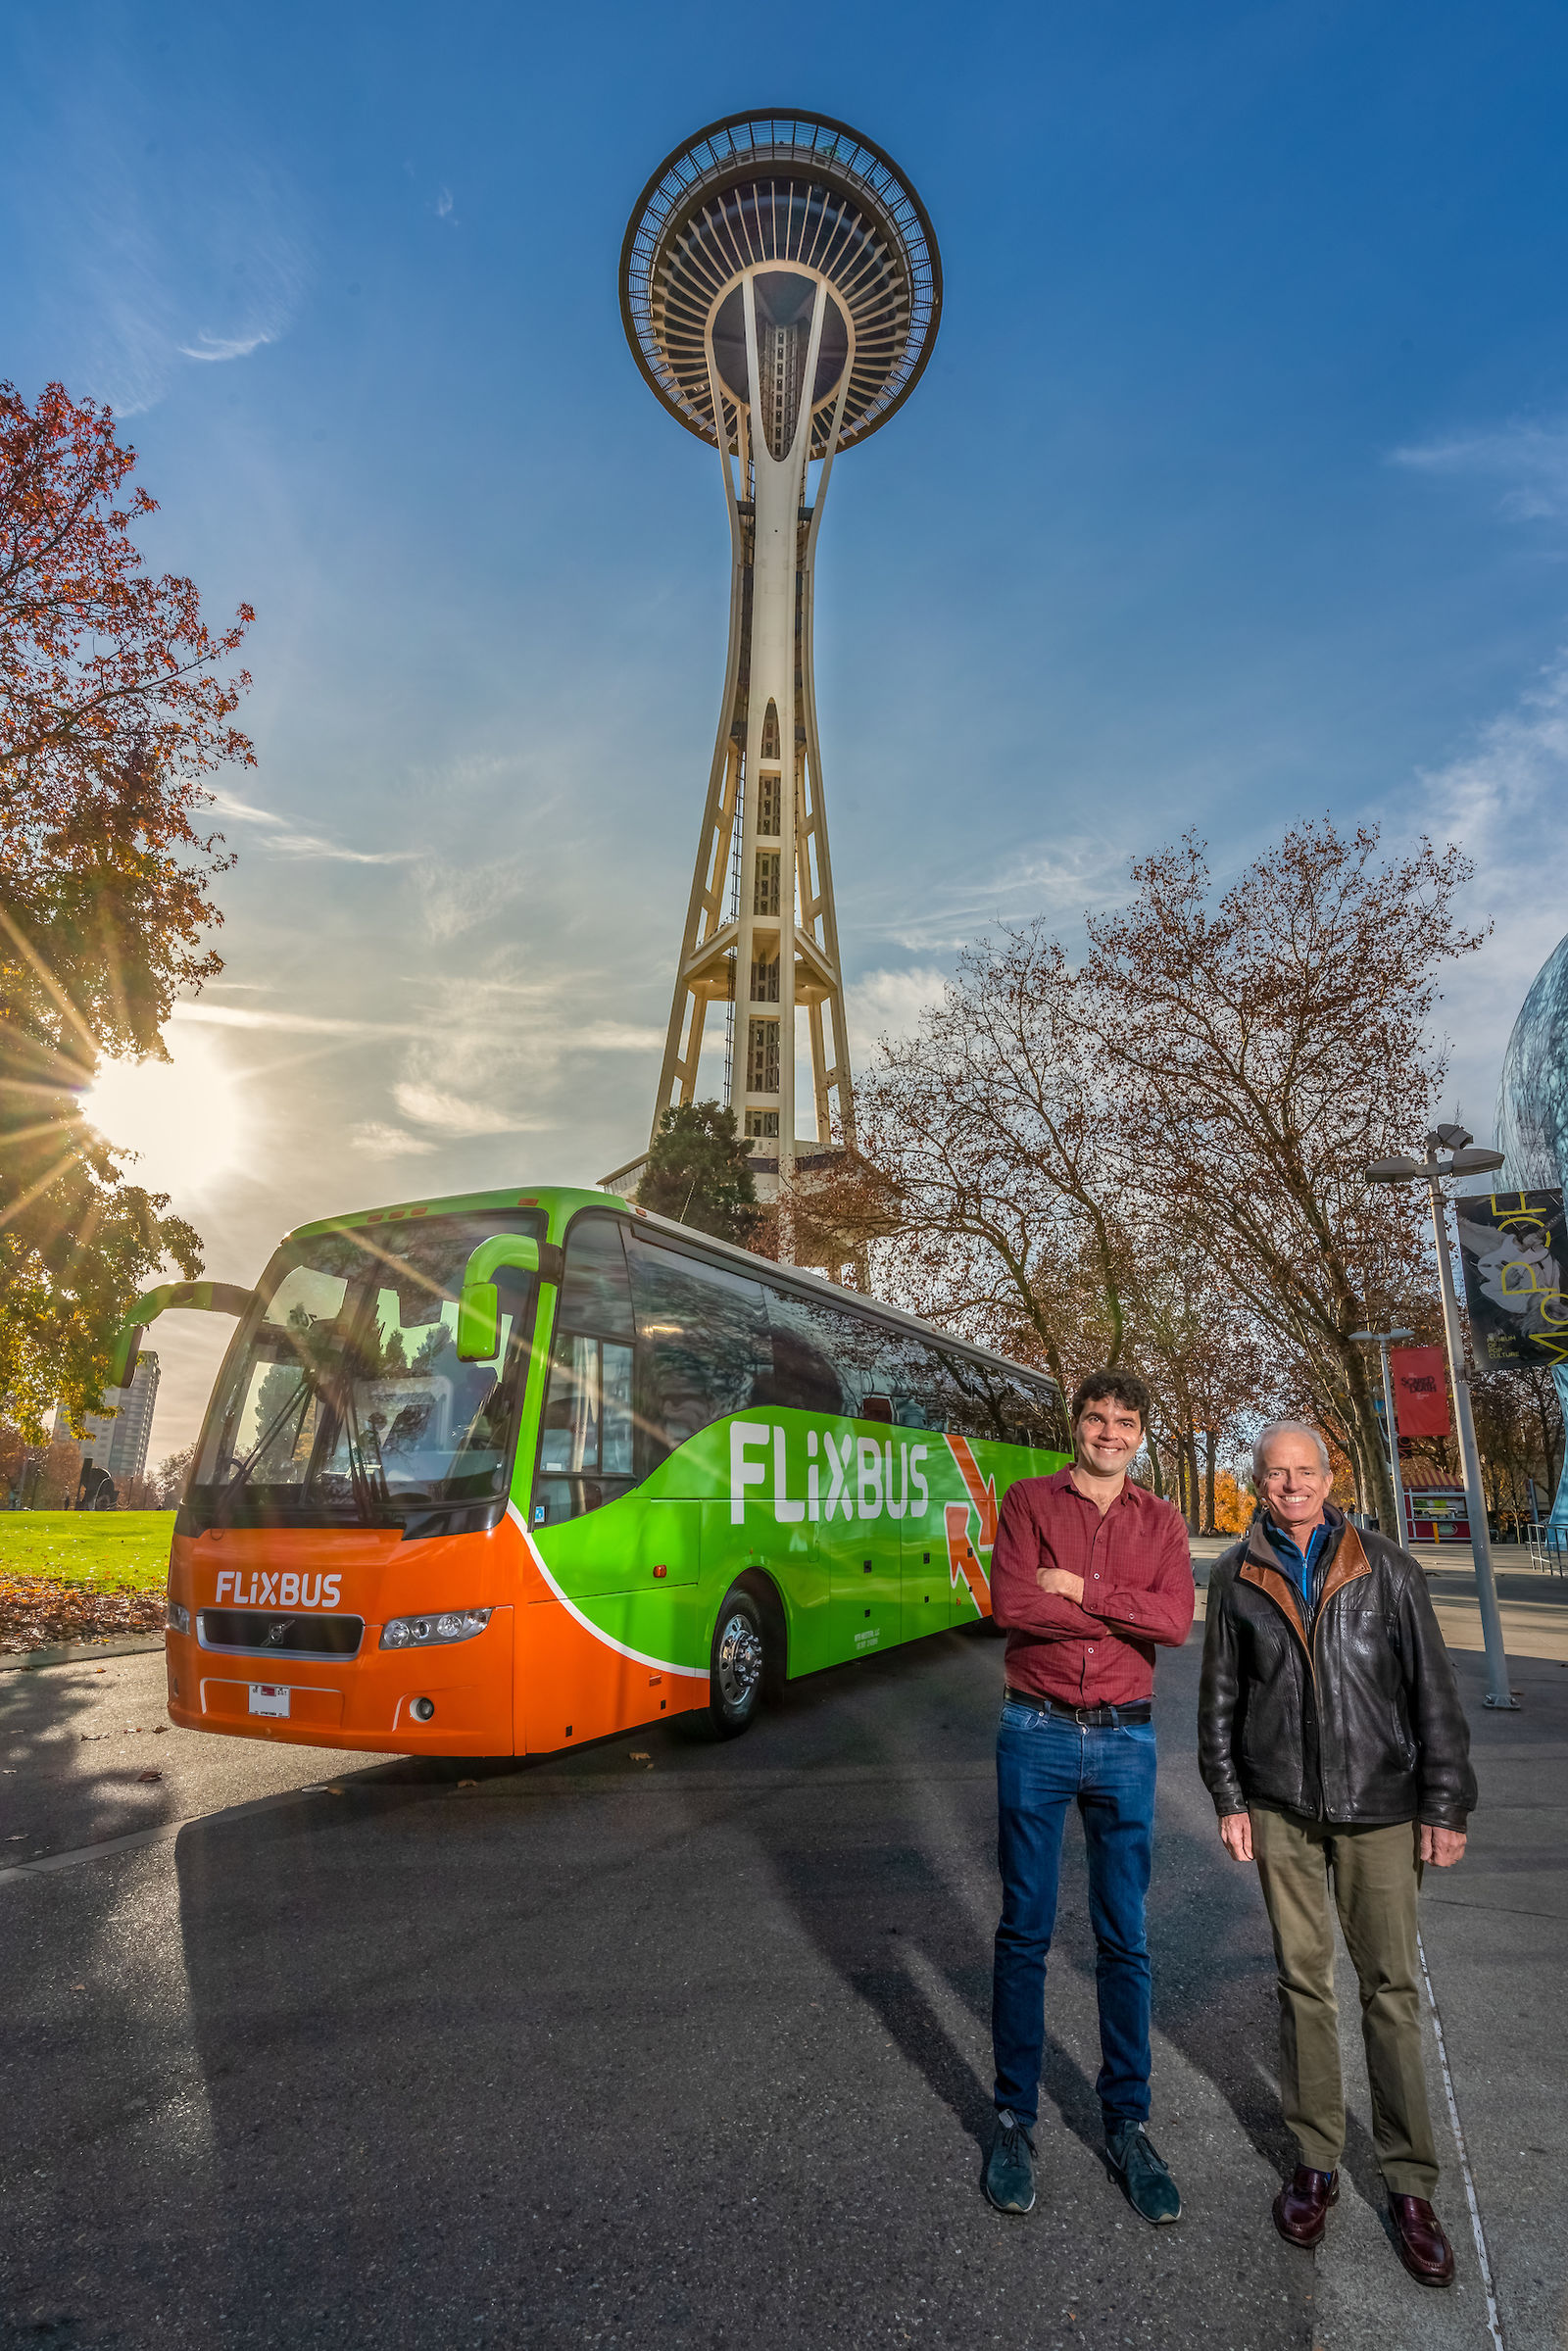 FlixBus plans to launch service on Thursday, with fares starting at $9.99. The company will offer four trips in each direction daily between Eugene and Portland, with stops on both the University of Oregon and Oregon State University campuses. (FlixBus)